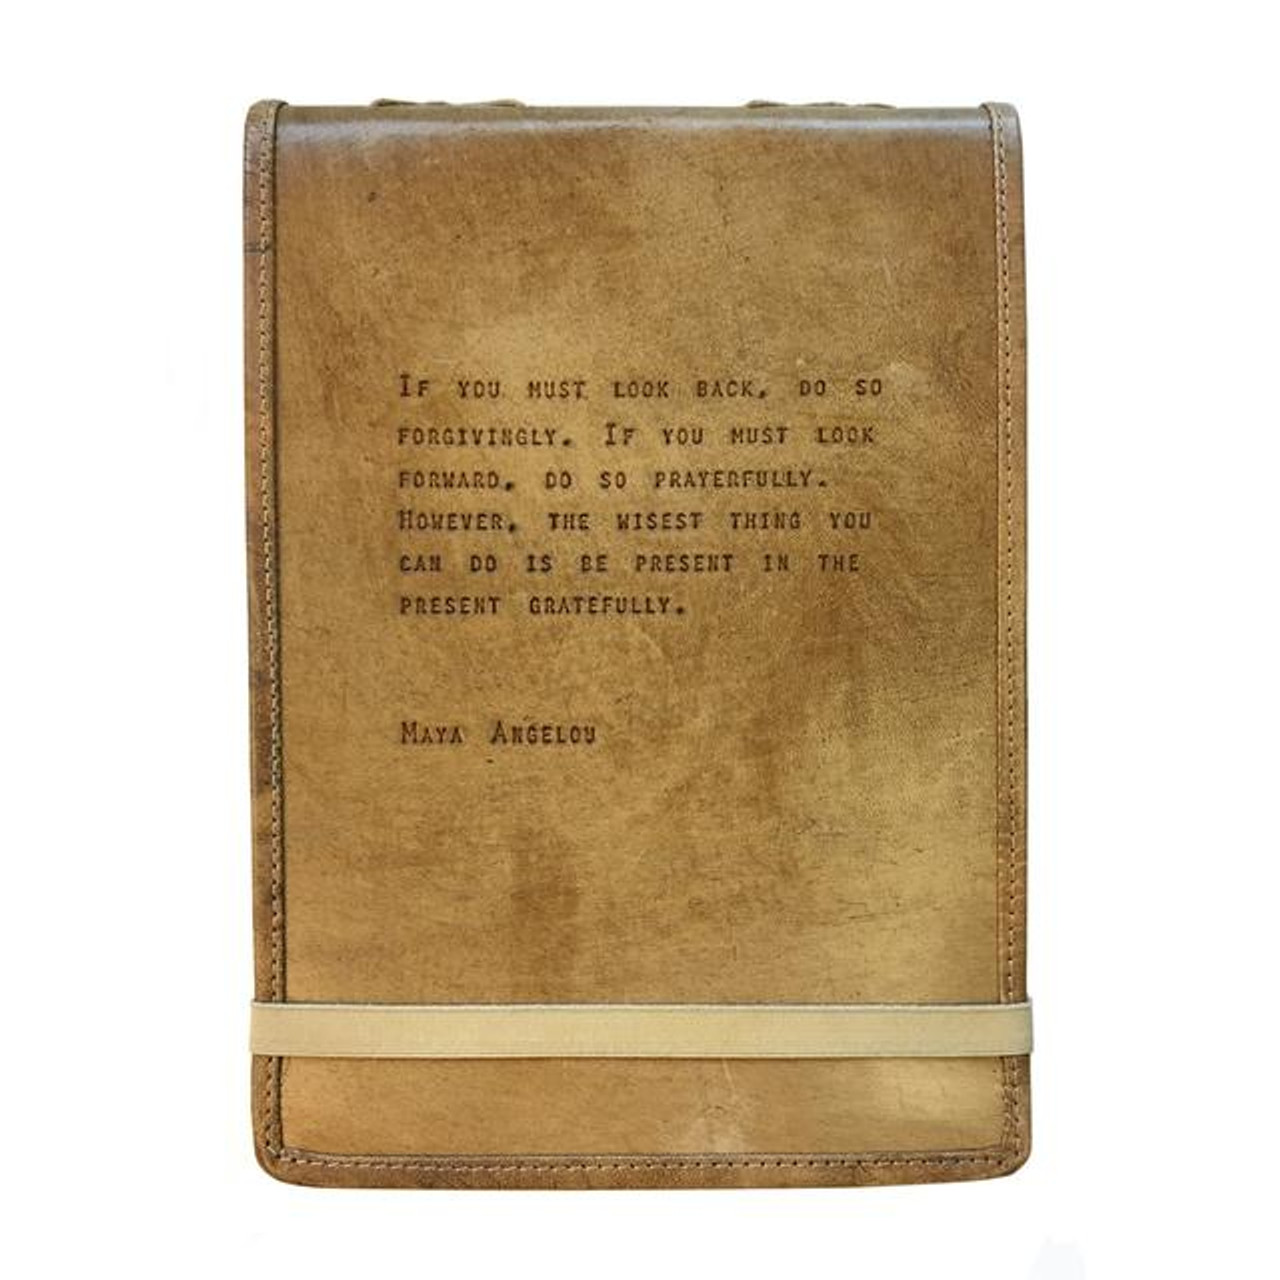 leather journal - if you must look back